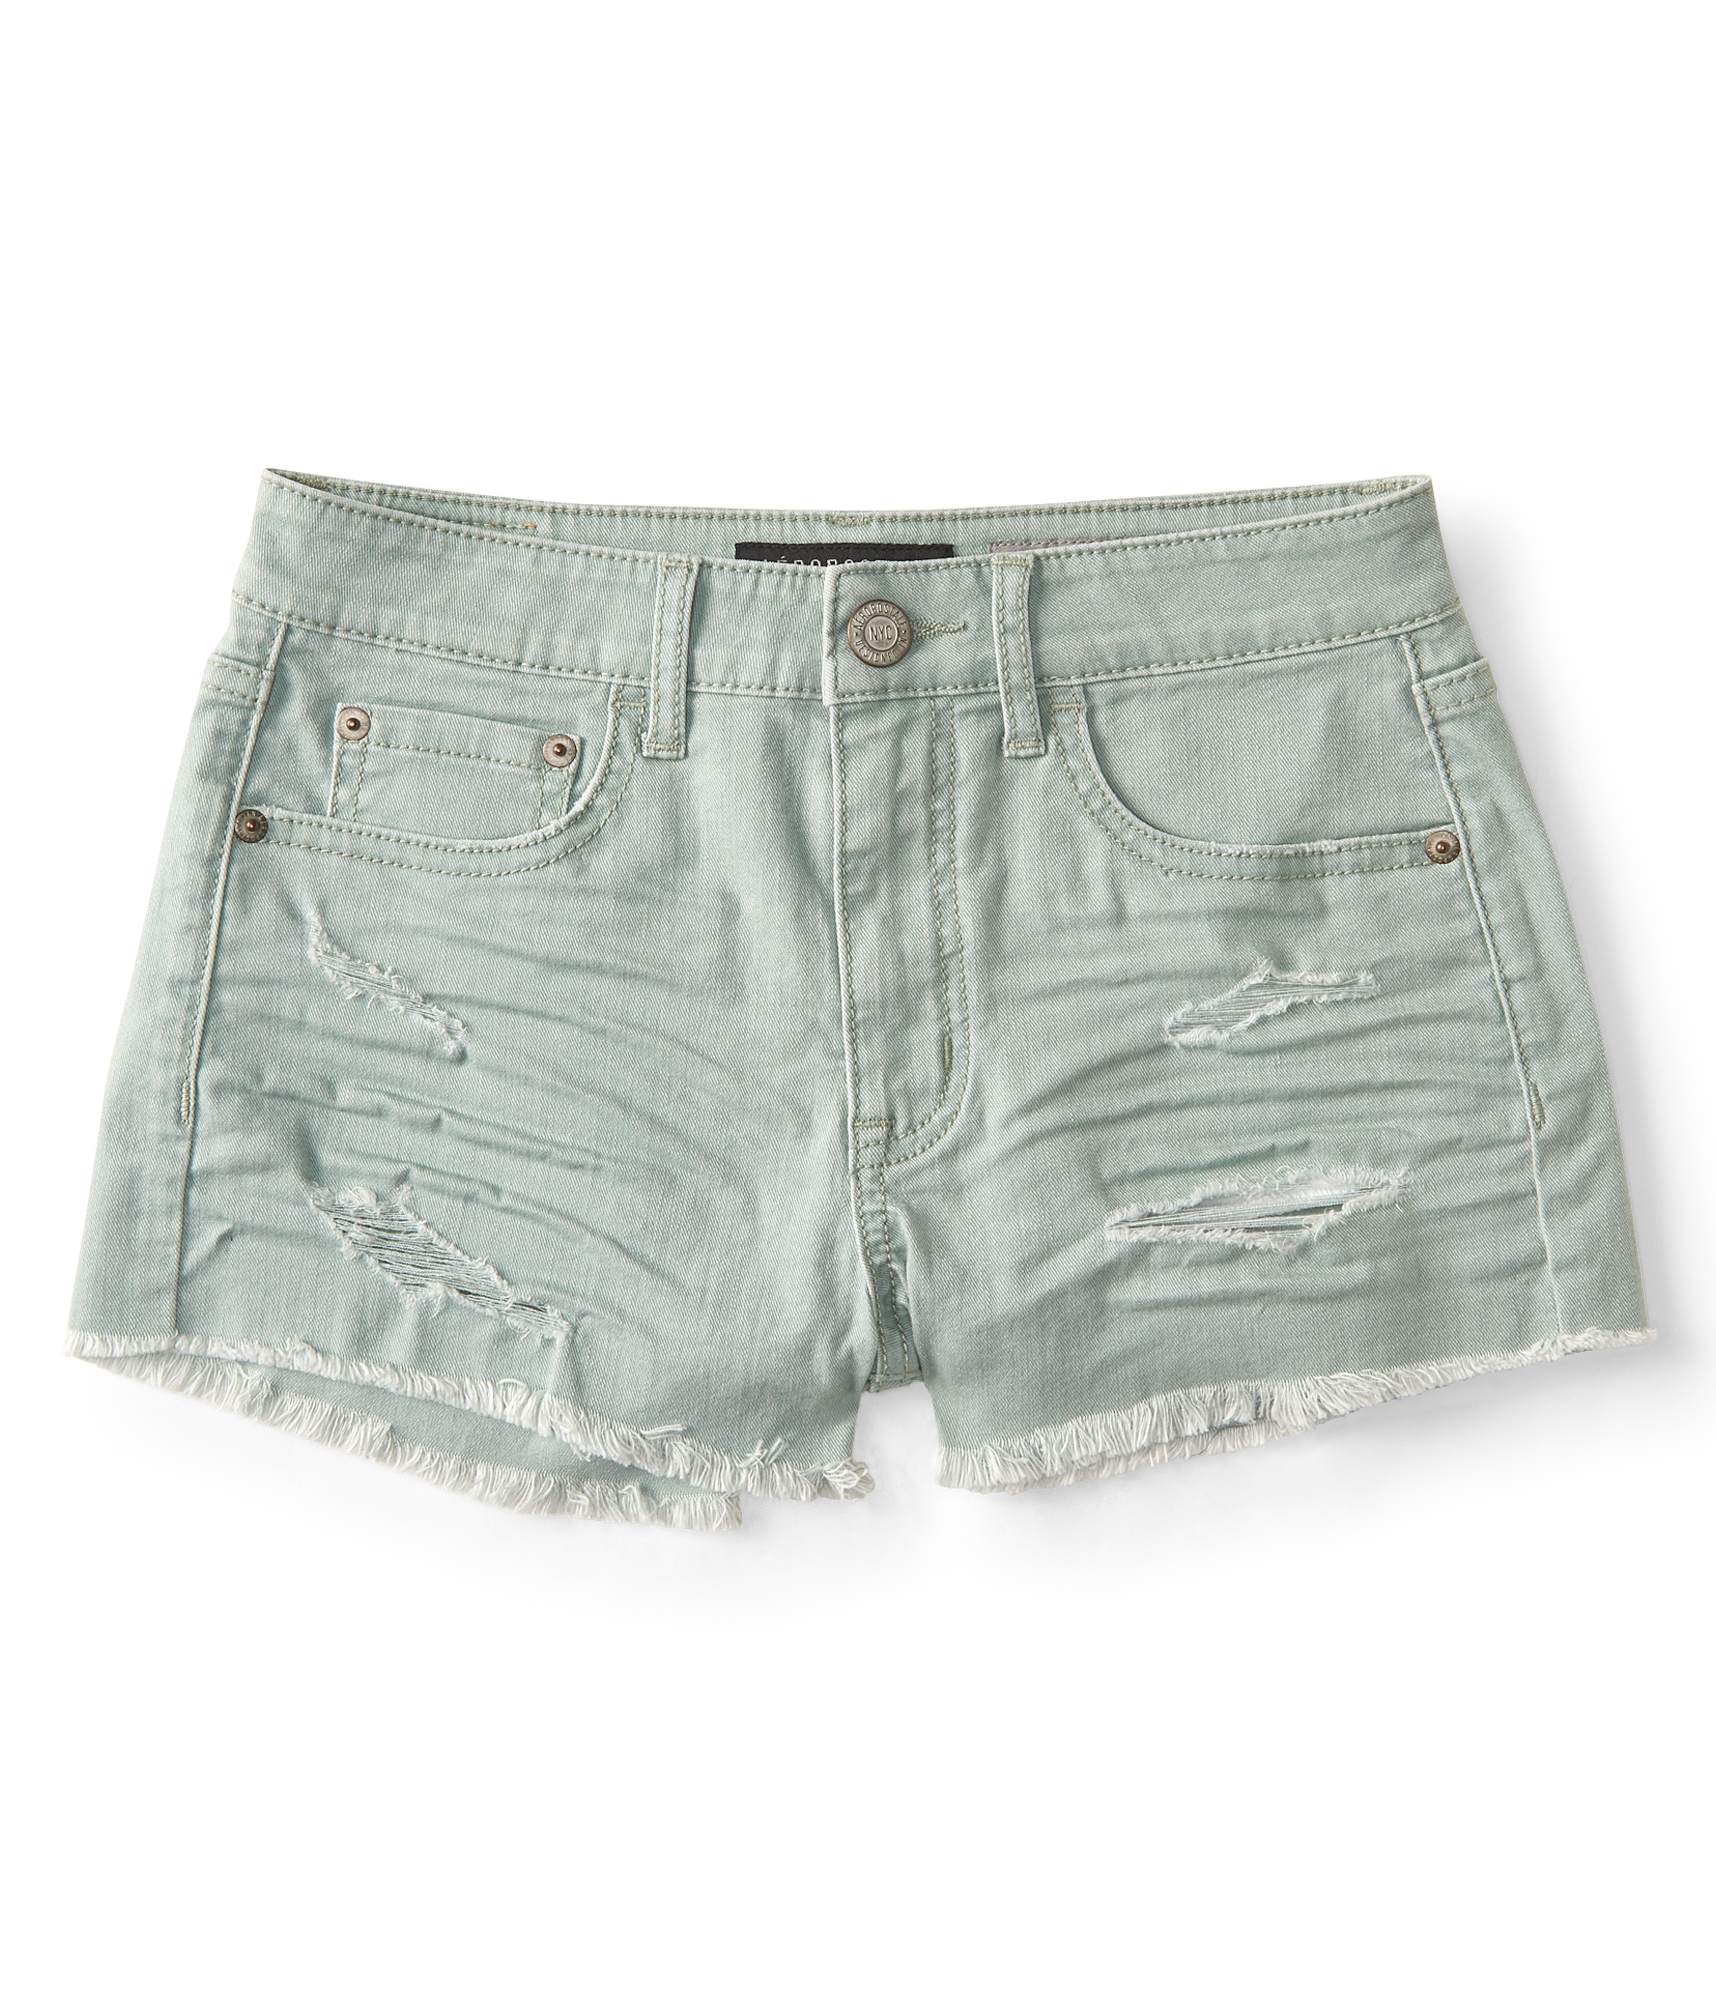 Aeropostale Seriously Stretchy High-Waisted Color Wash Denim Shorty Shorts - Light Green, 000